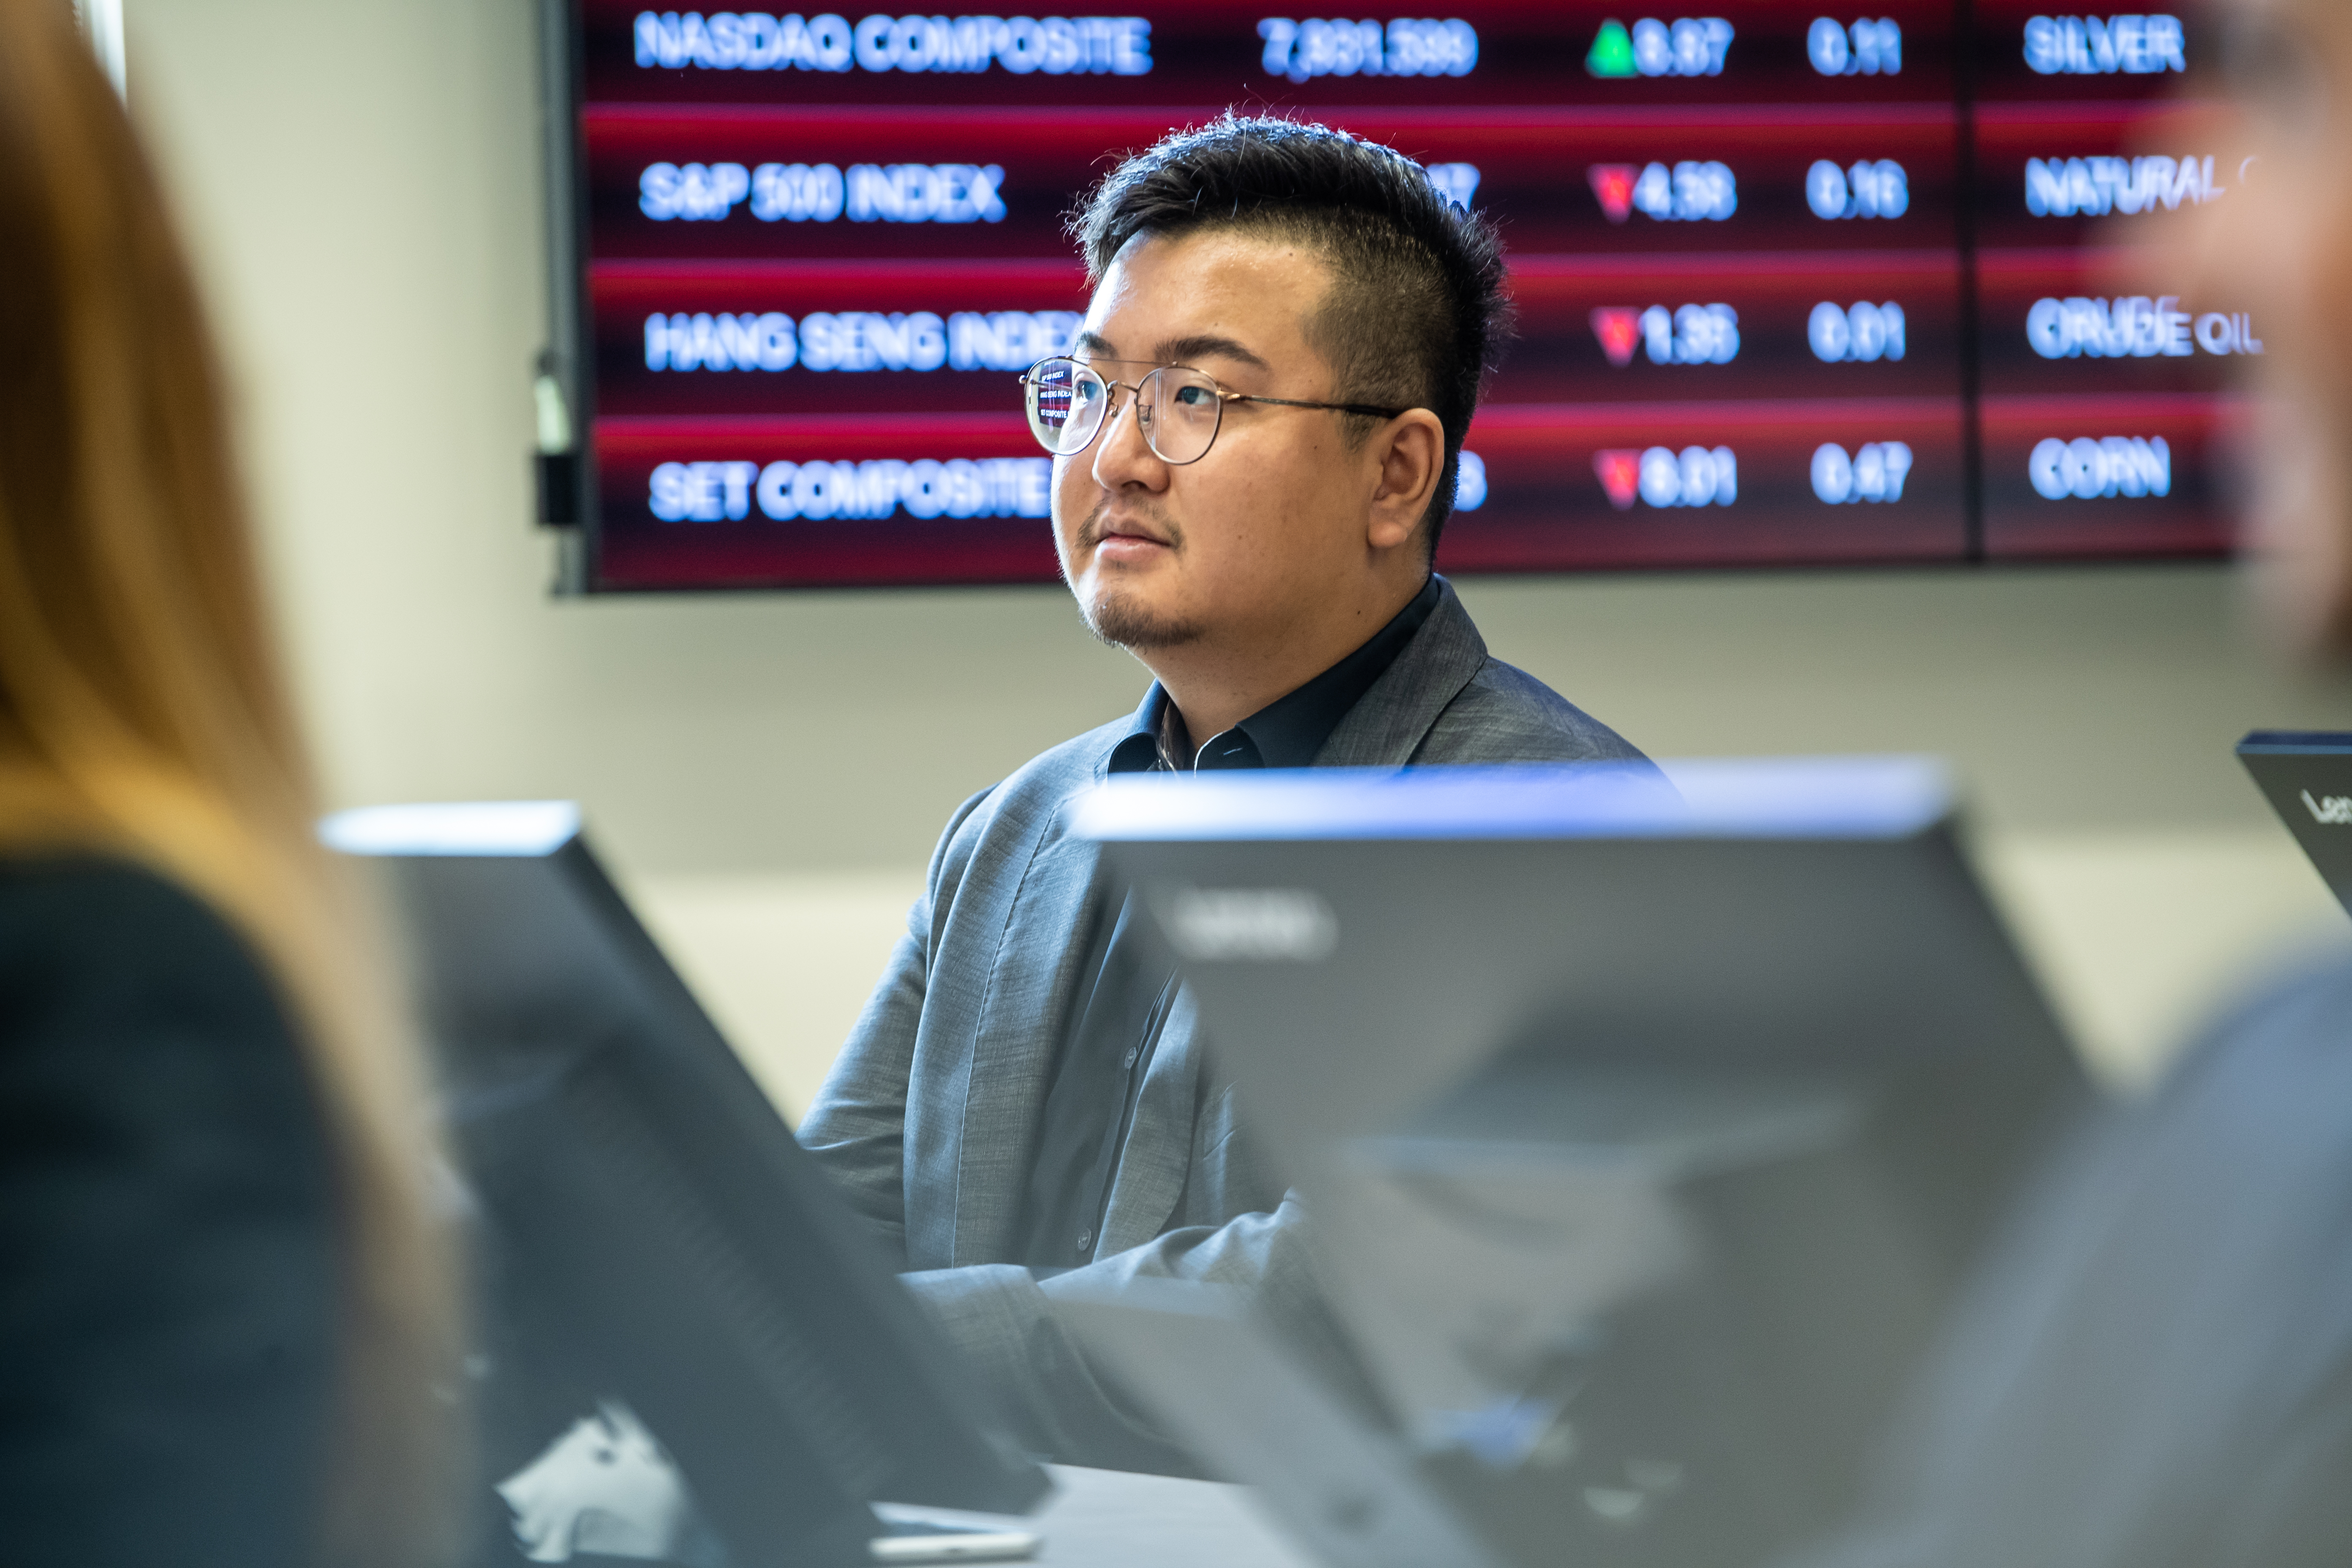 A student in Haub School's Wall Street Trading Room sits at a desk with eyes facing forward